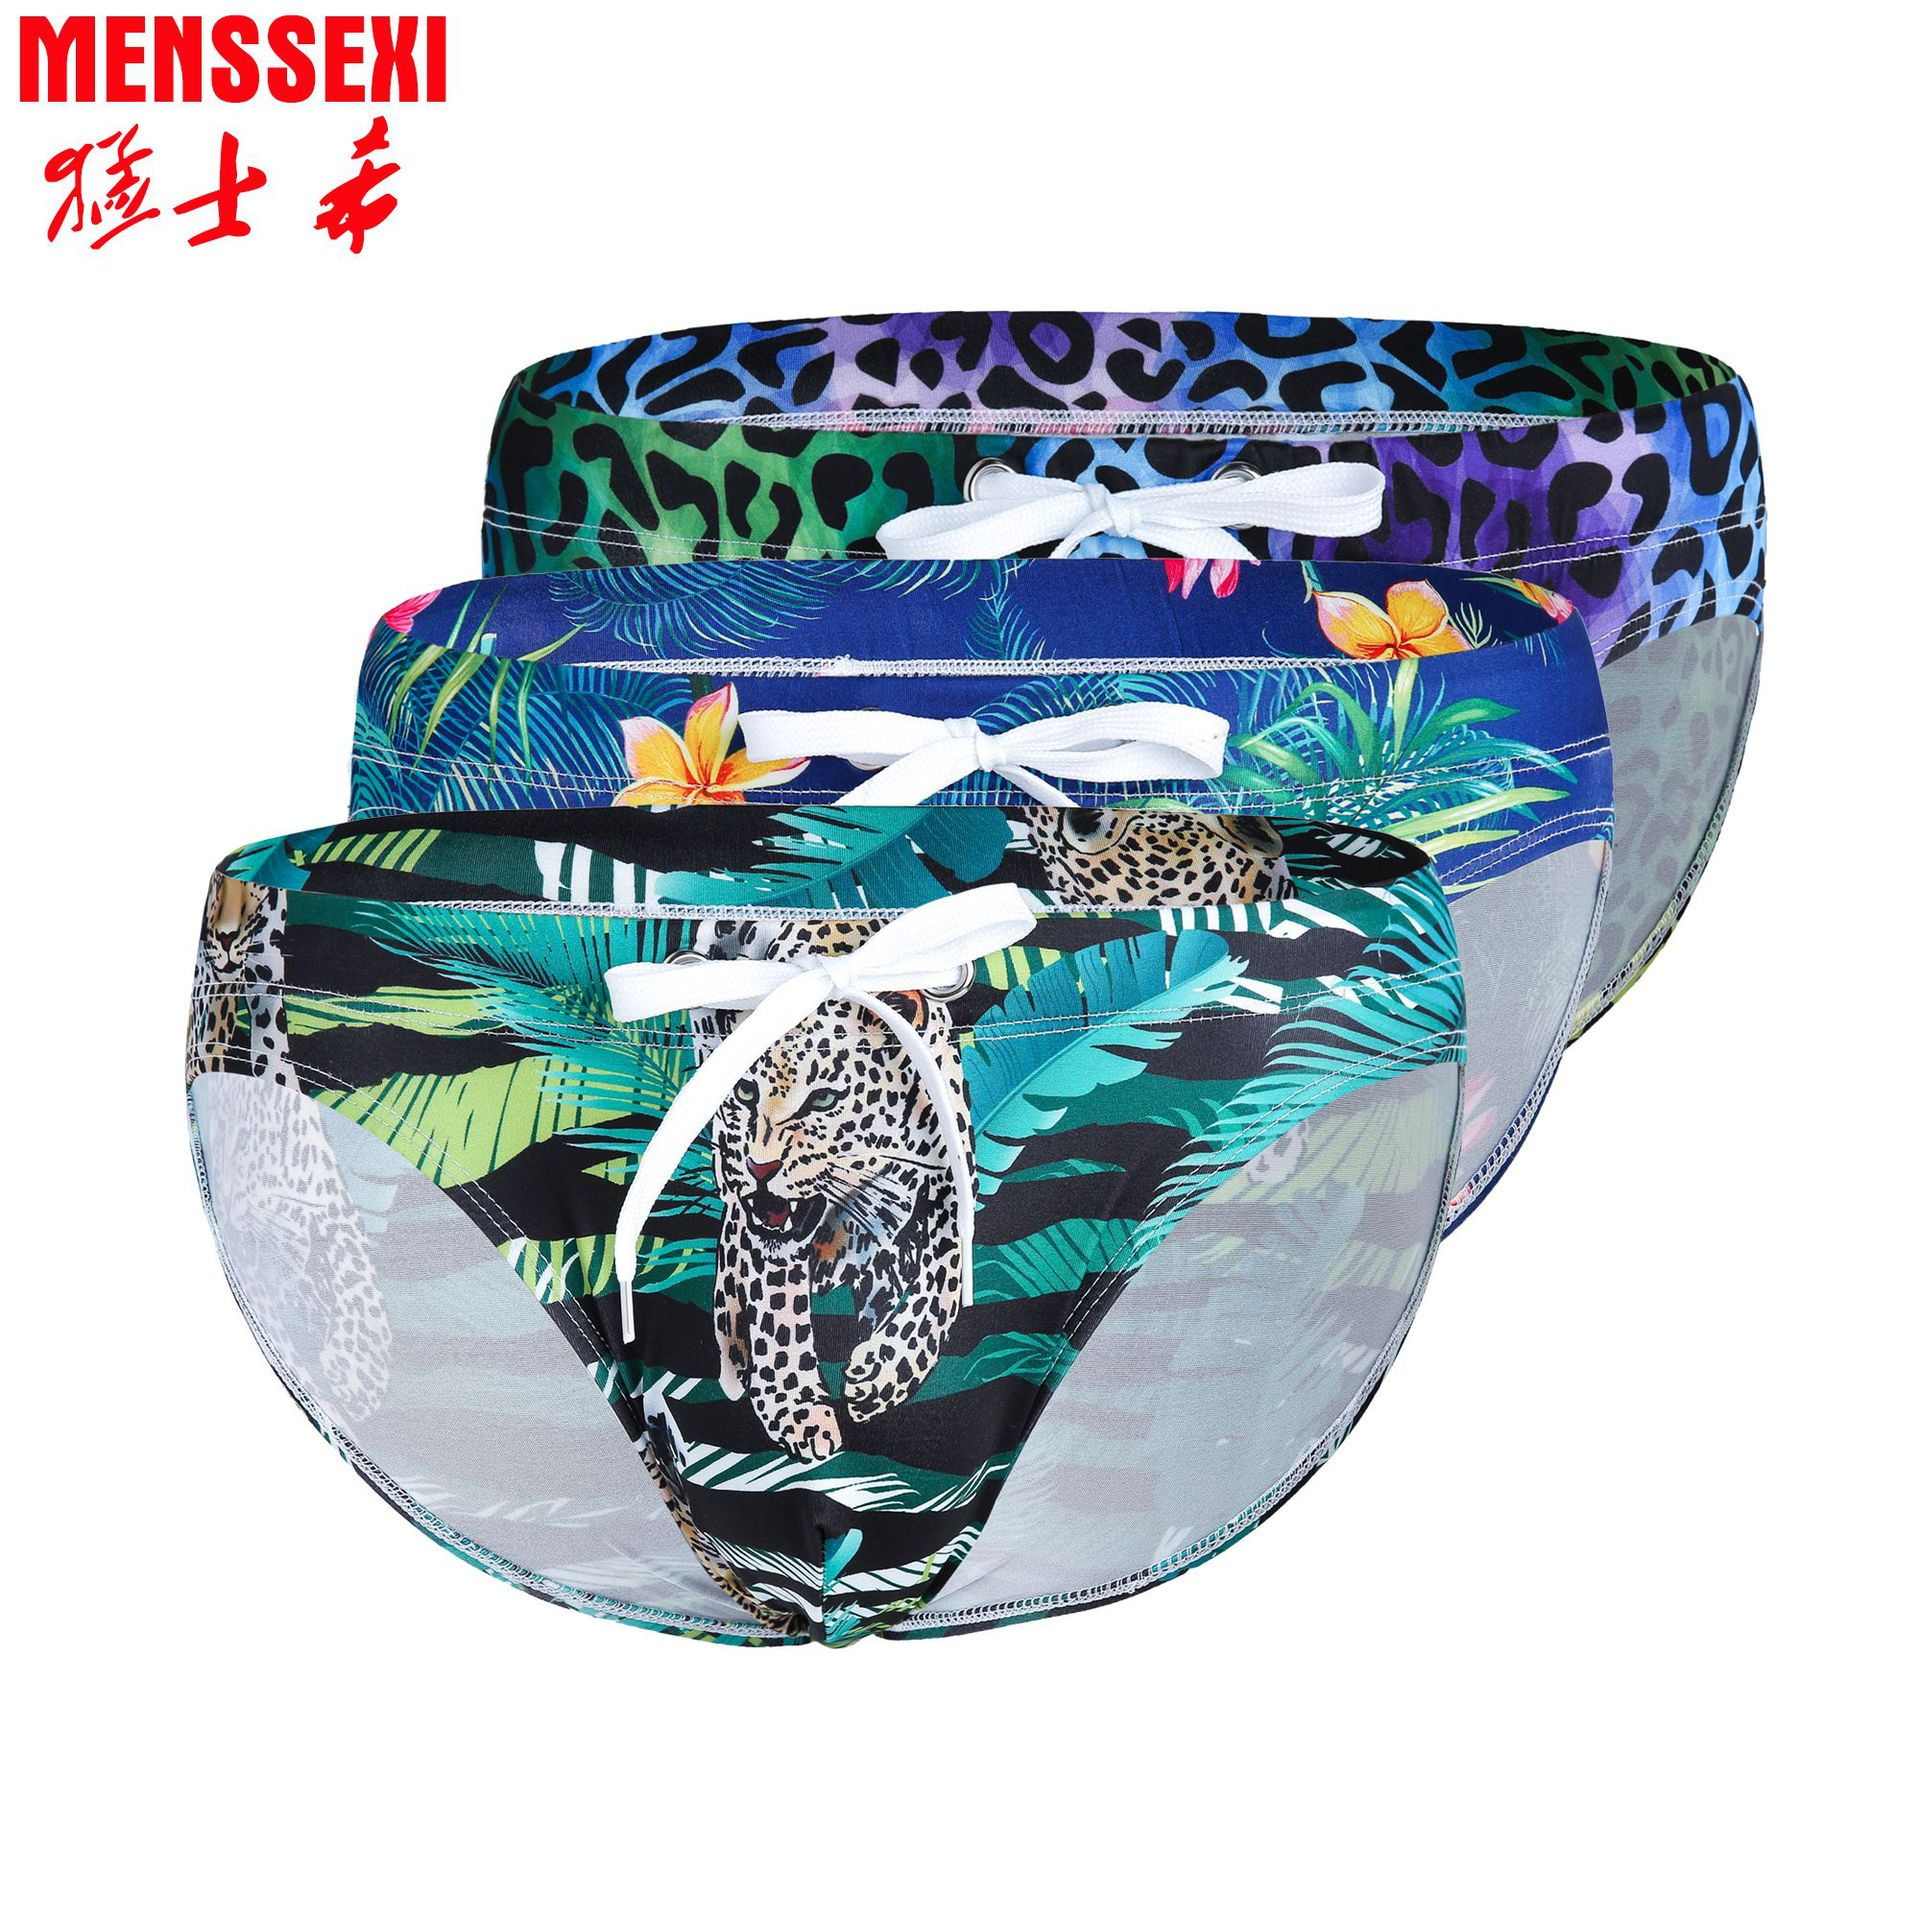 Hot Sales 2019 New Style MEN'S Swimming Trunks Low Waist Triangle Animal Flower Digital Printing Europe And America